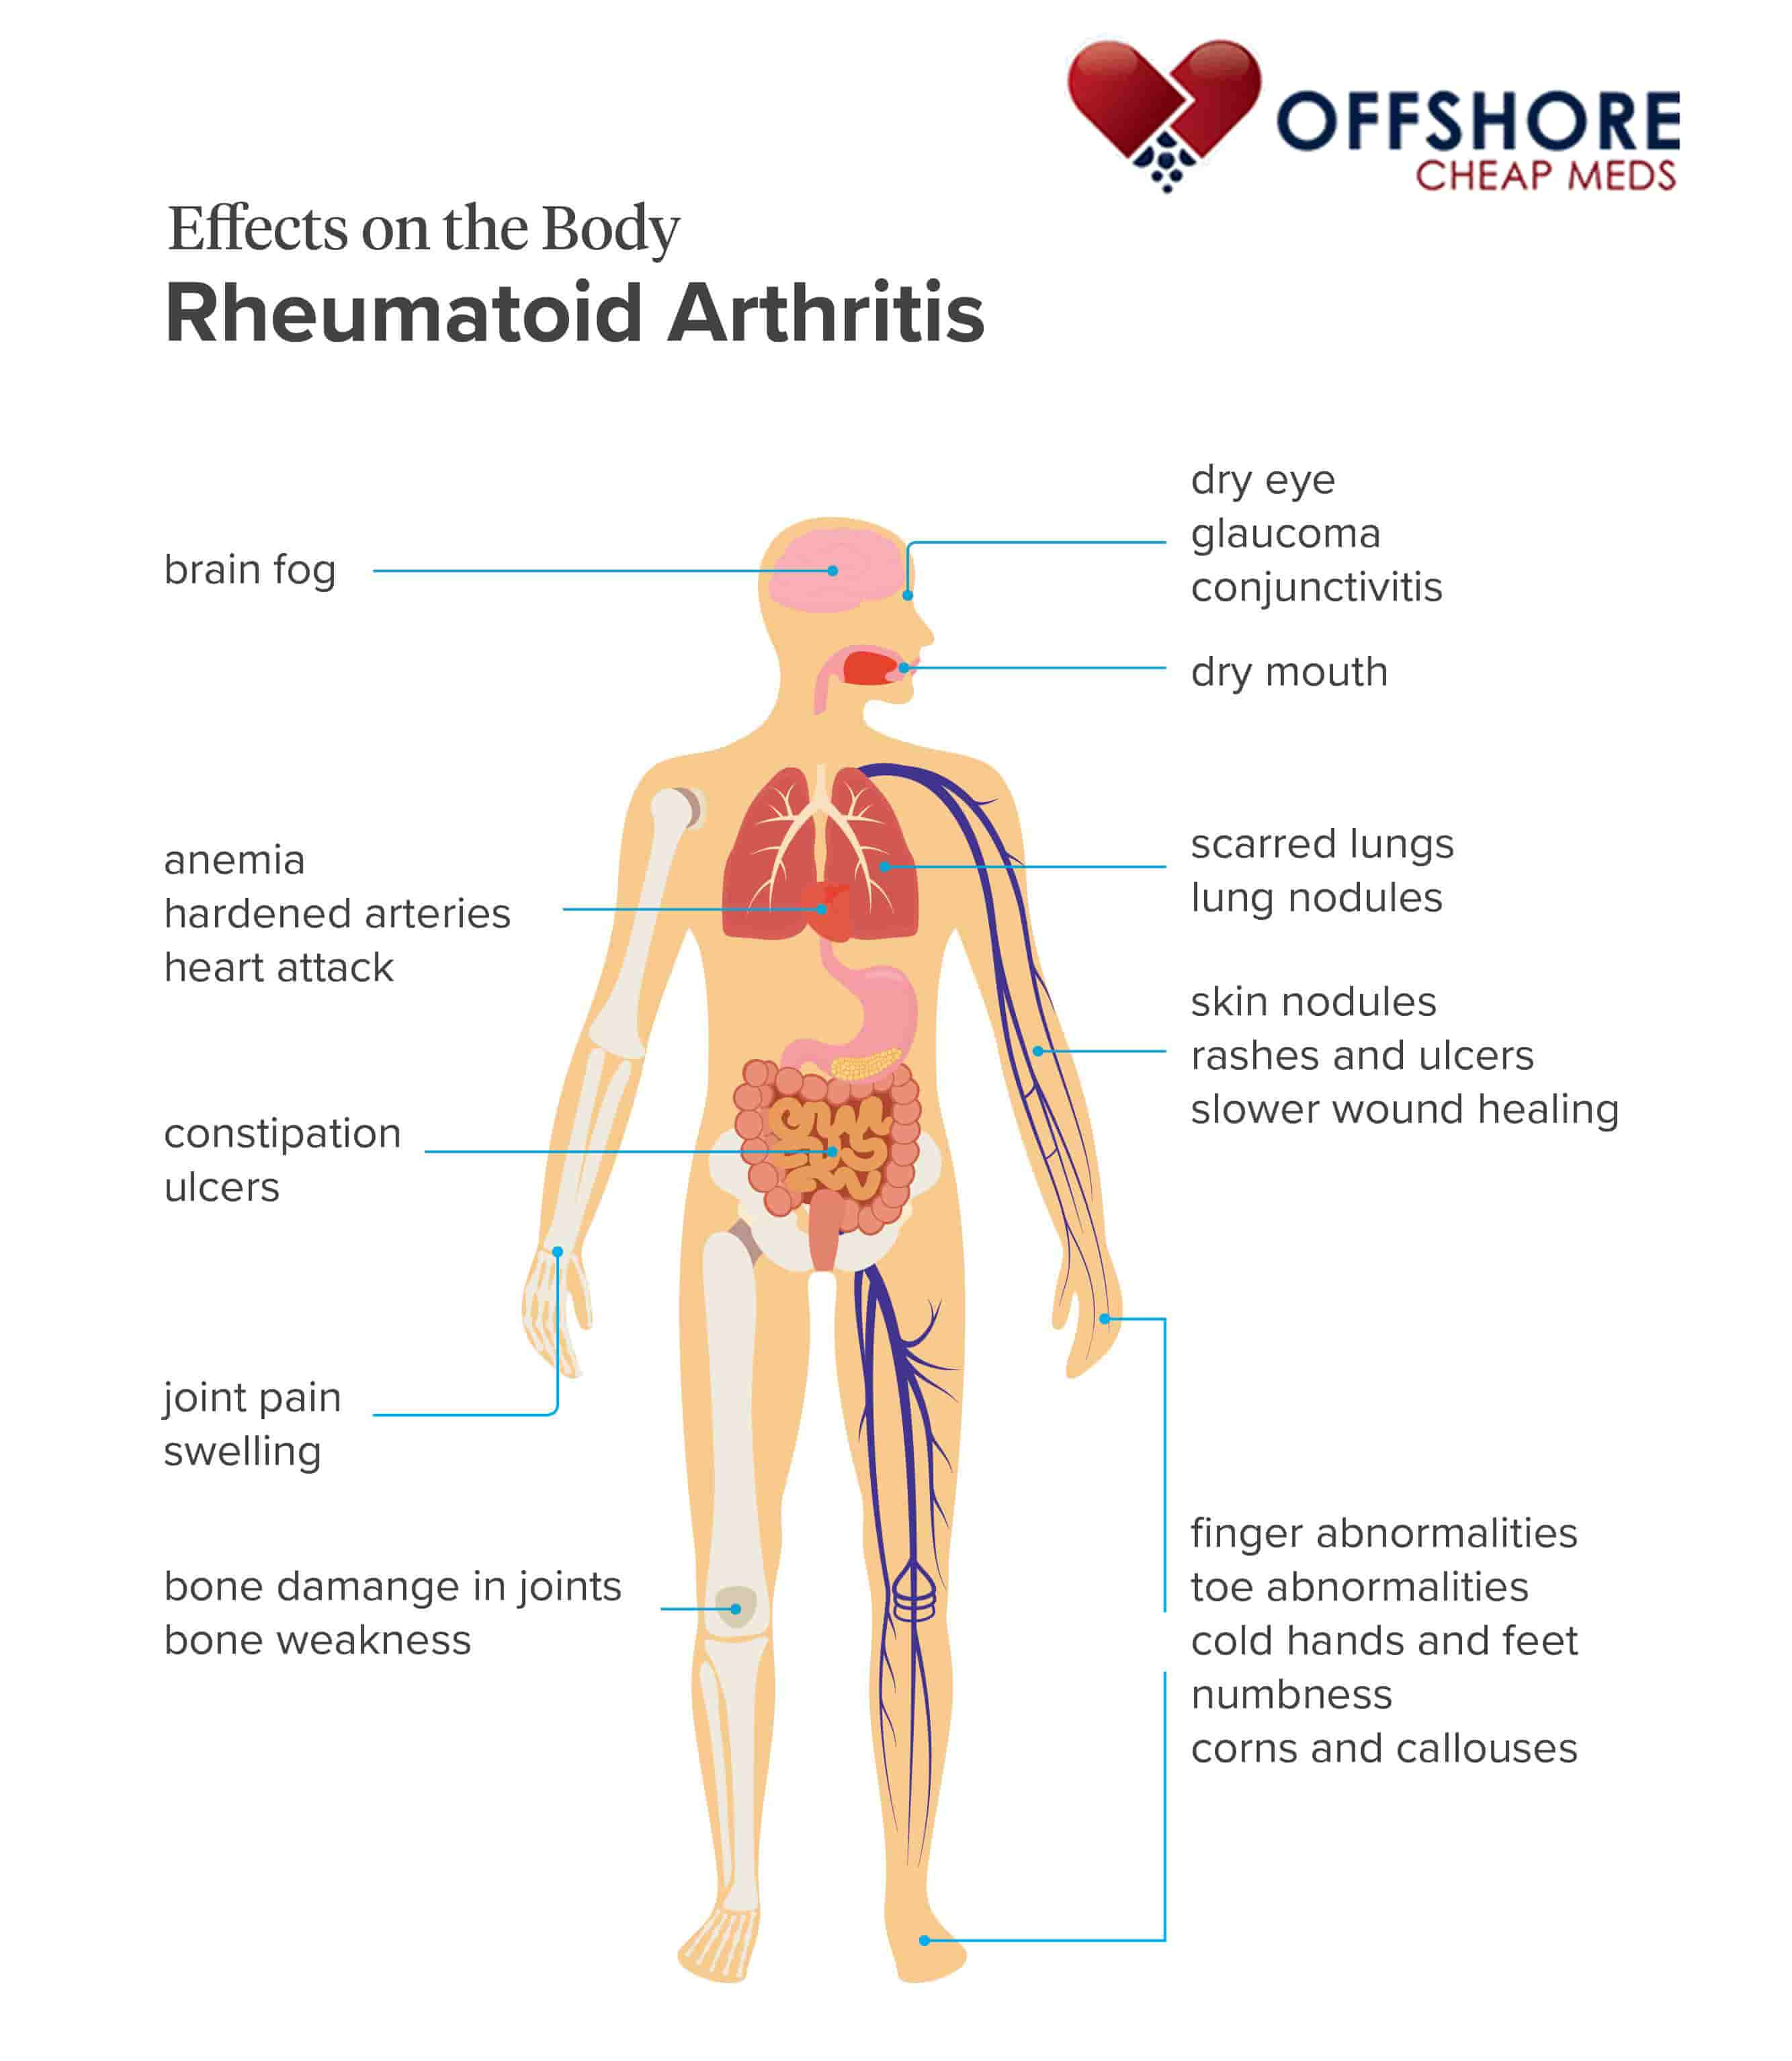 effects on the body of rheumatoid arthritis infographic OffshoreCheapMeds.com mkqlfl What Are The Complications Of Rheumatoid Arthritis?